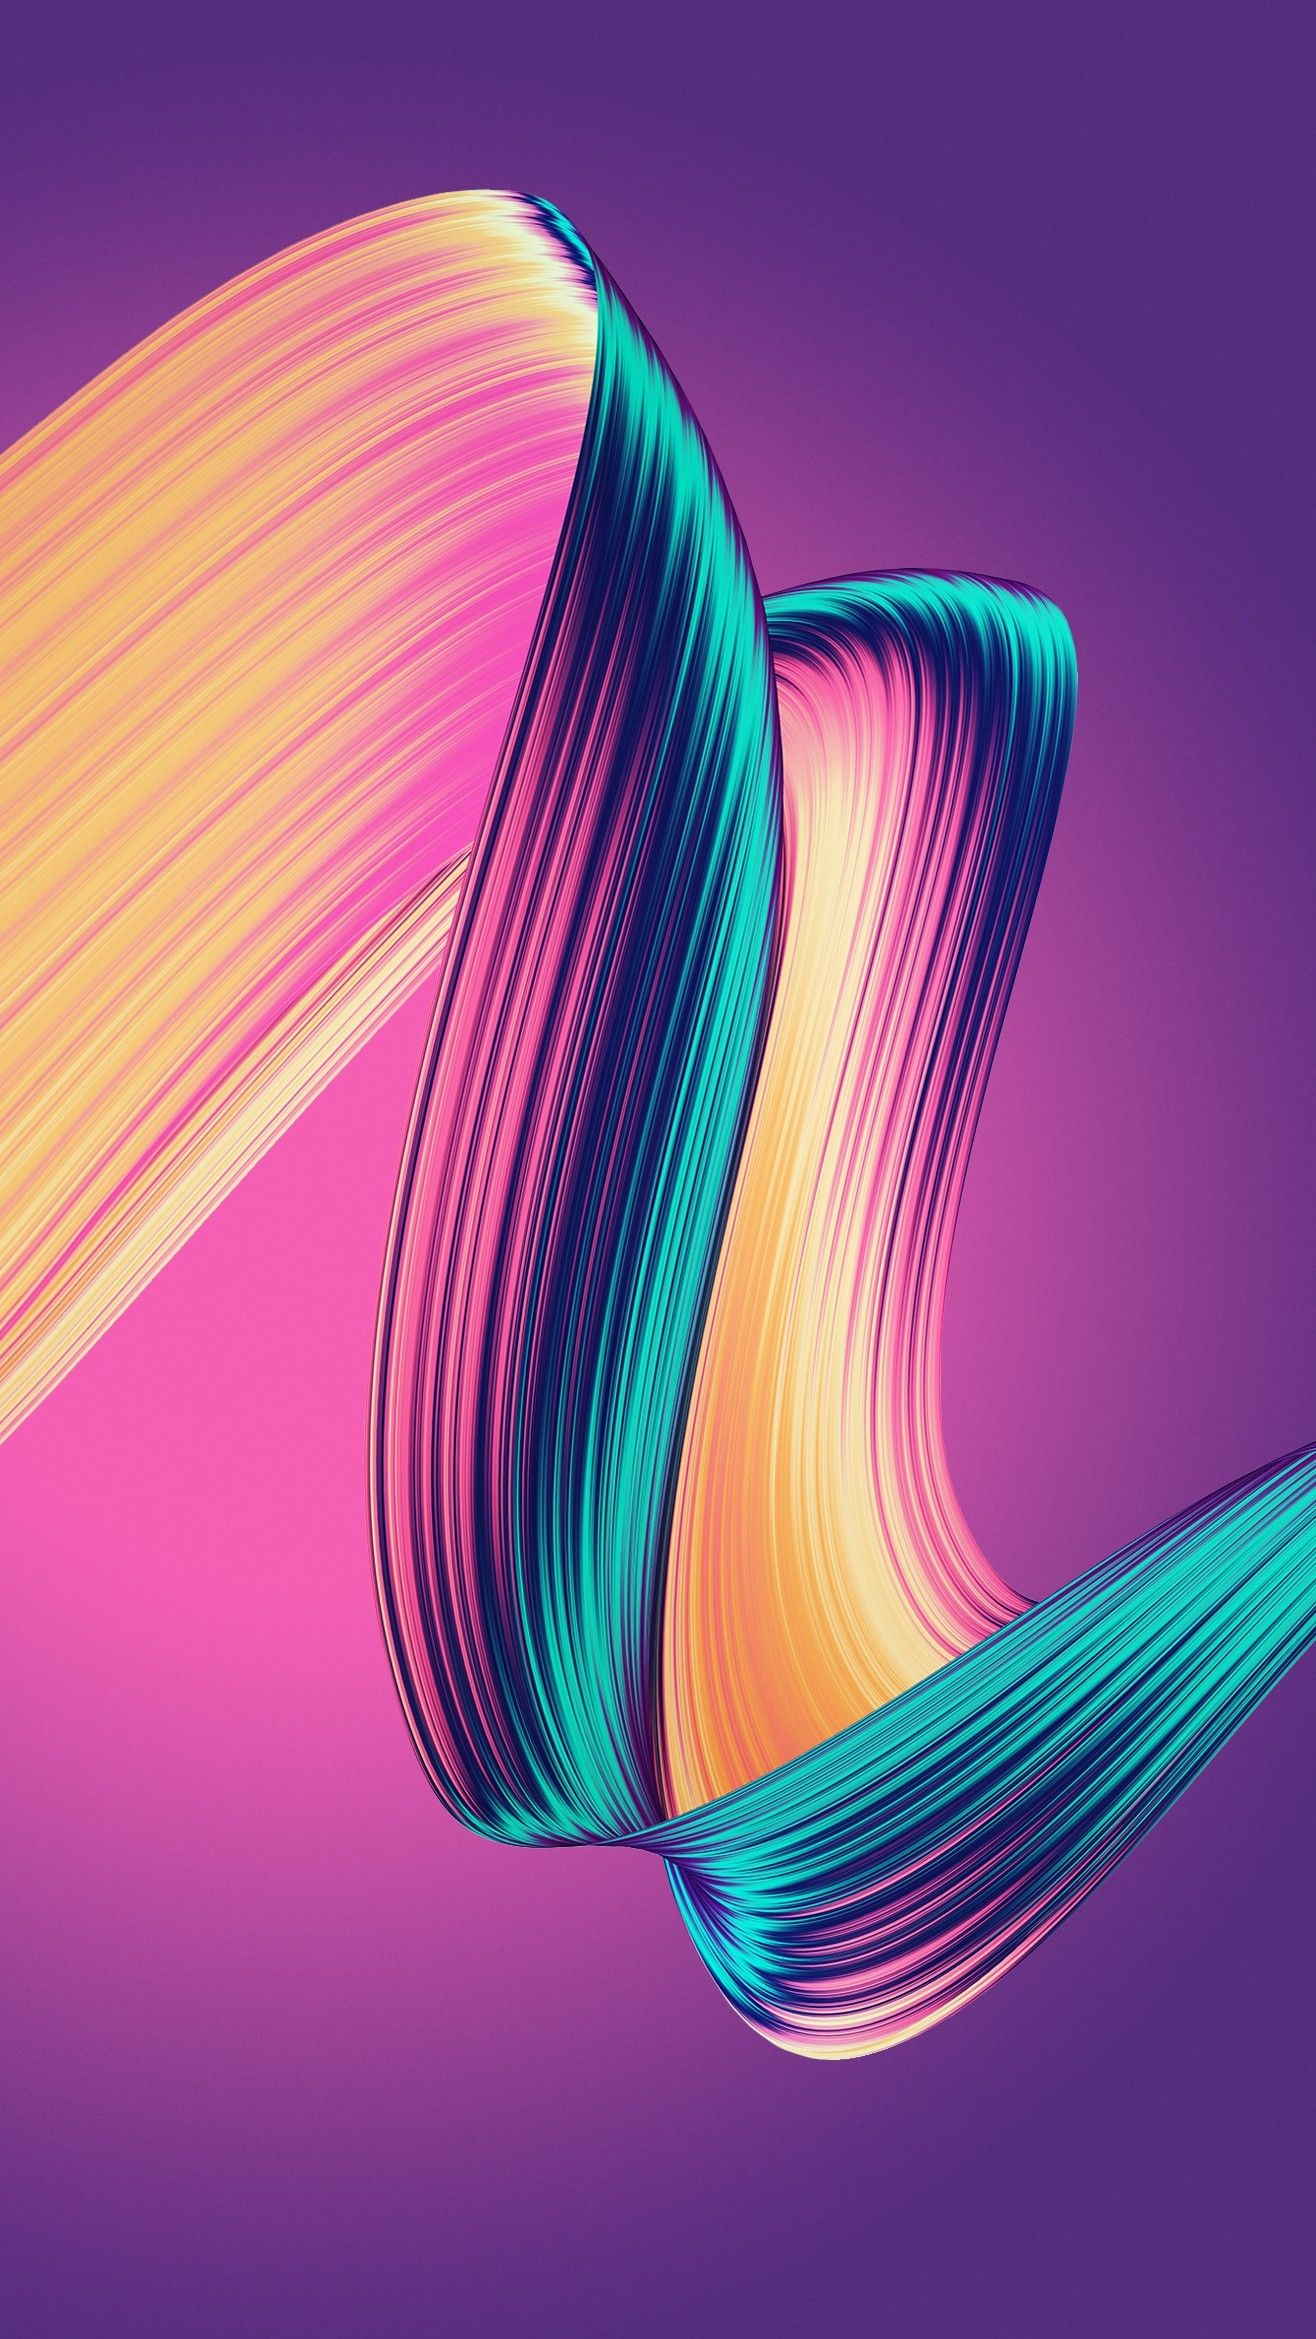 Honor play Abstract iphone wallpaper Phone wallpaper images 1316x2339